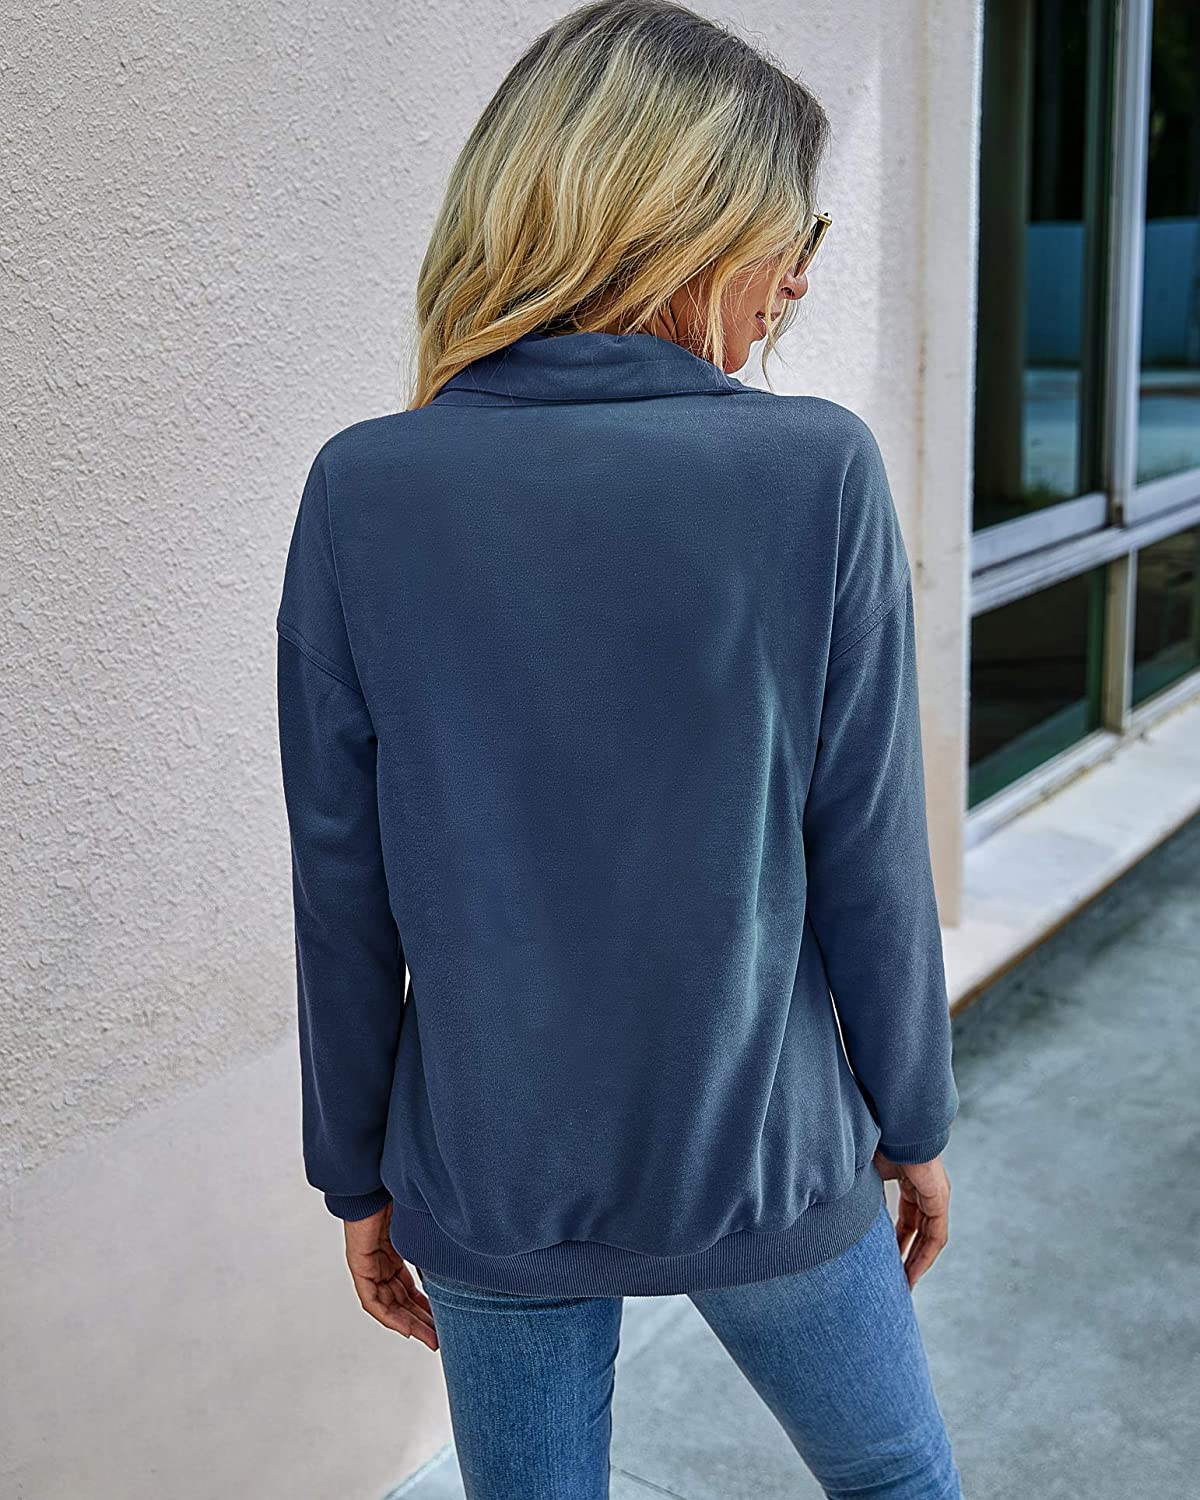 Famulily Womens Casual Zip Up Sweatshirt Plain Long Sleeve Tops and Pockets